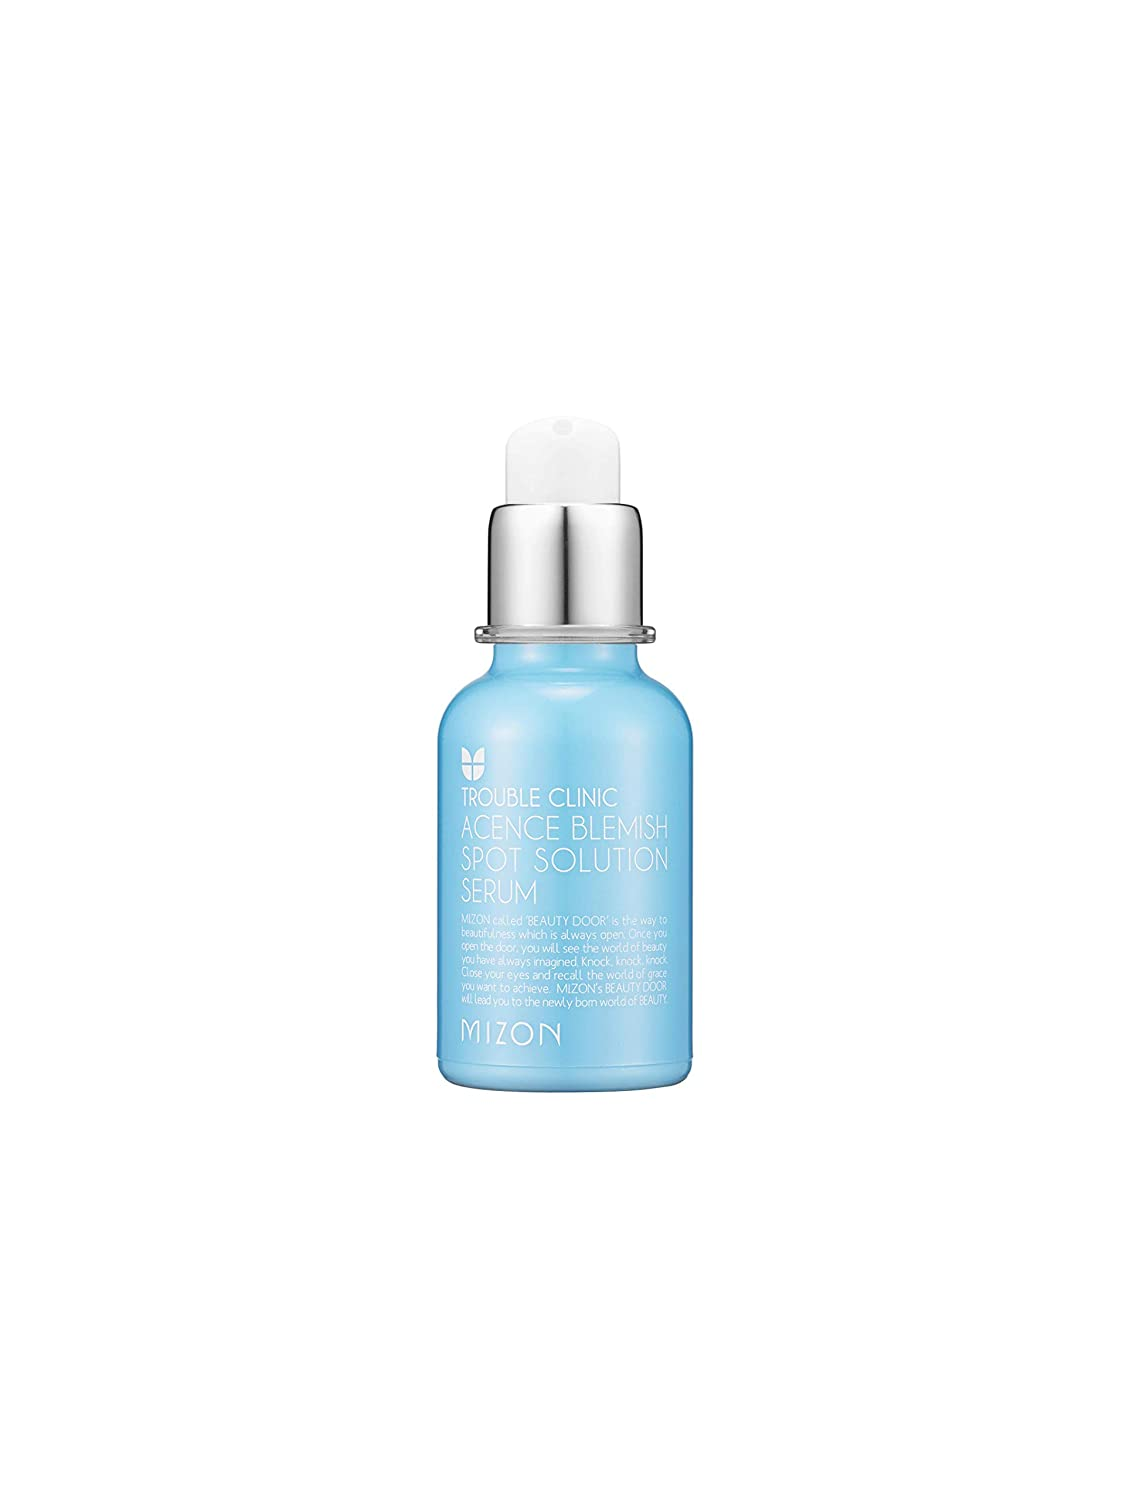 Mizon Acence Blemish Spot Solution Serum 30ml, Skin Astringent, Soothing, Blemish Care and Skin Protection, Blemish Spot Solution Serum to Sooth Irritated Skin, Treats Blemishes, Tone Up and Protects